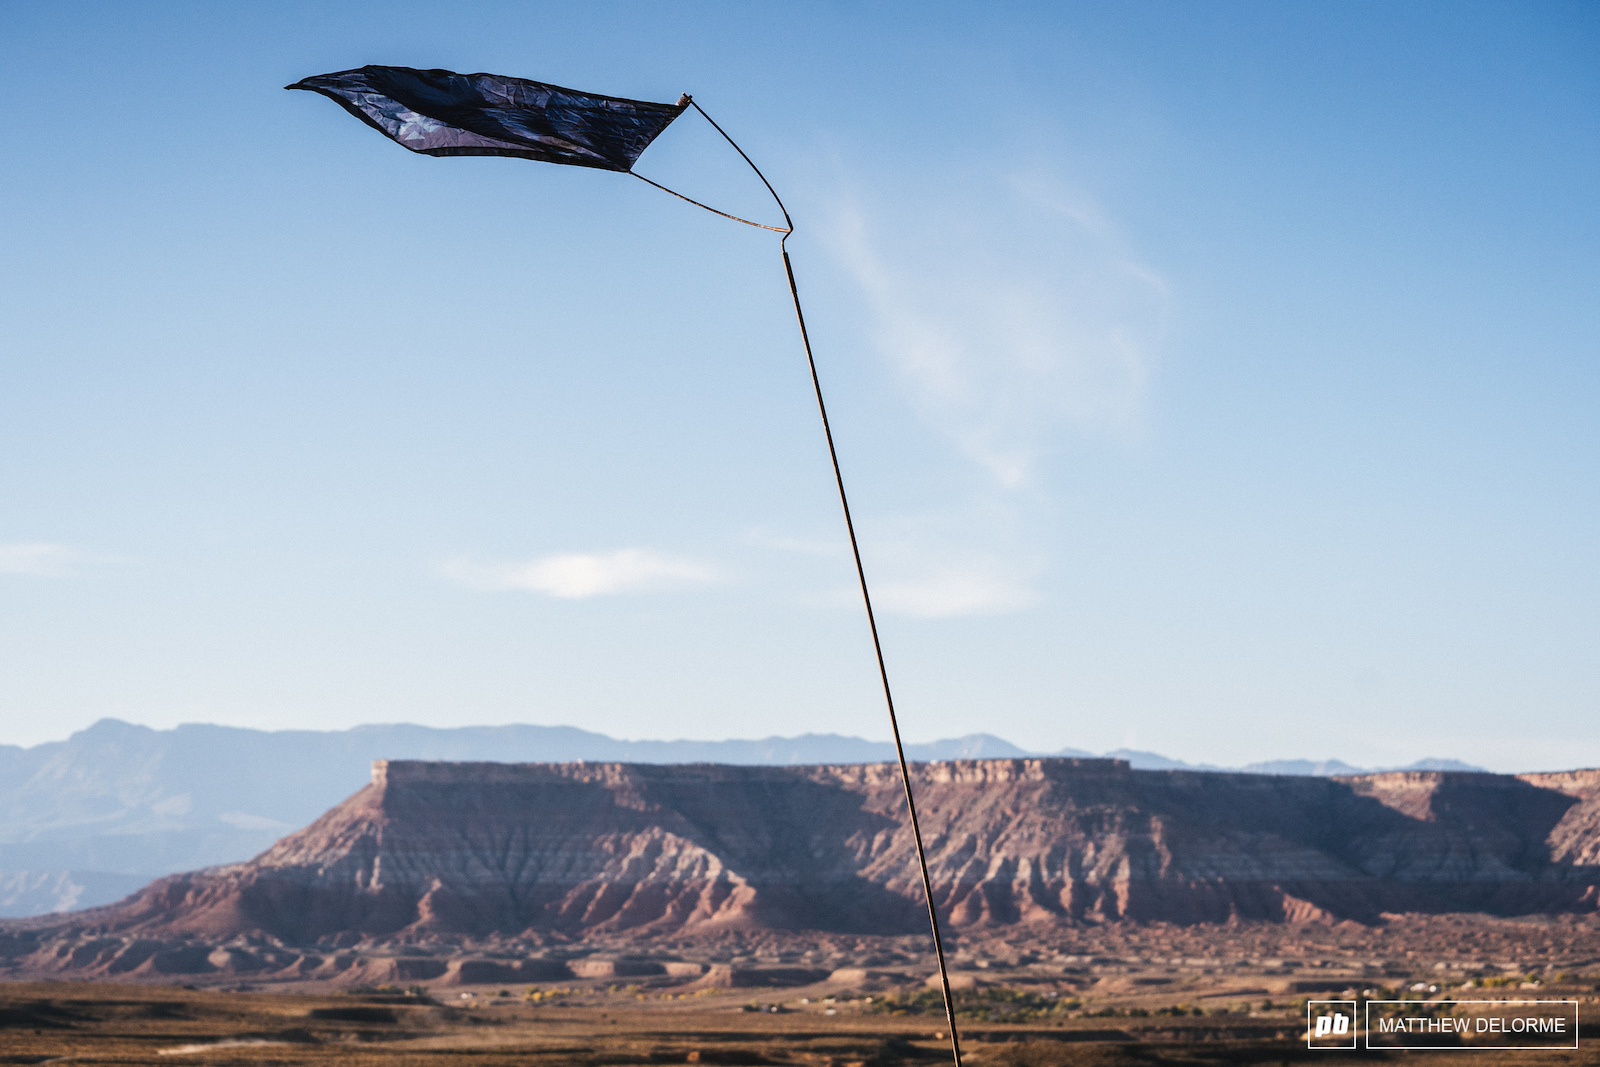 The winds of sh t sent the sh t flag blowing straight out on top of the s amp it mesa Randy.